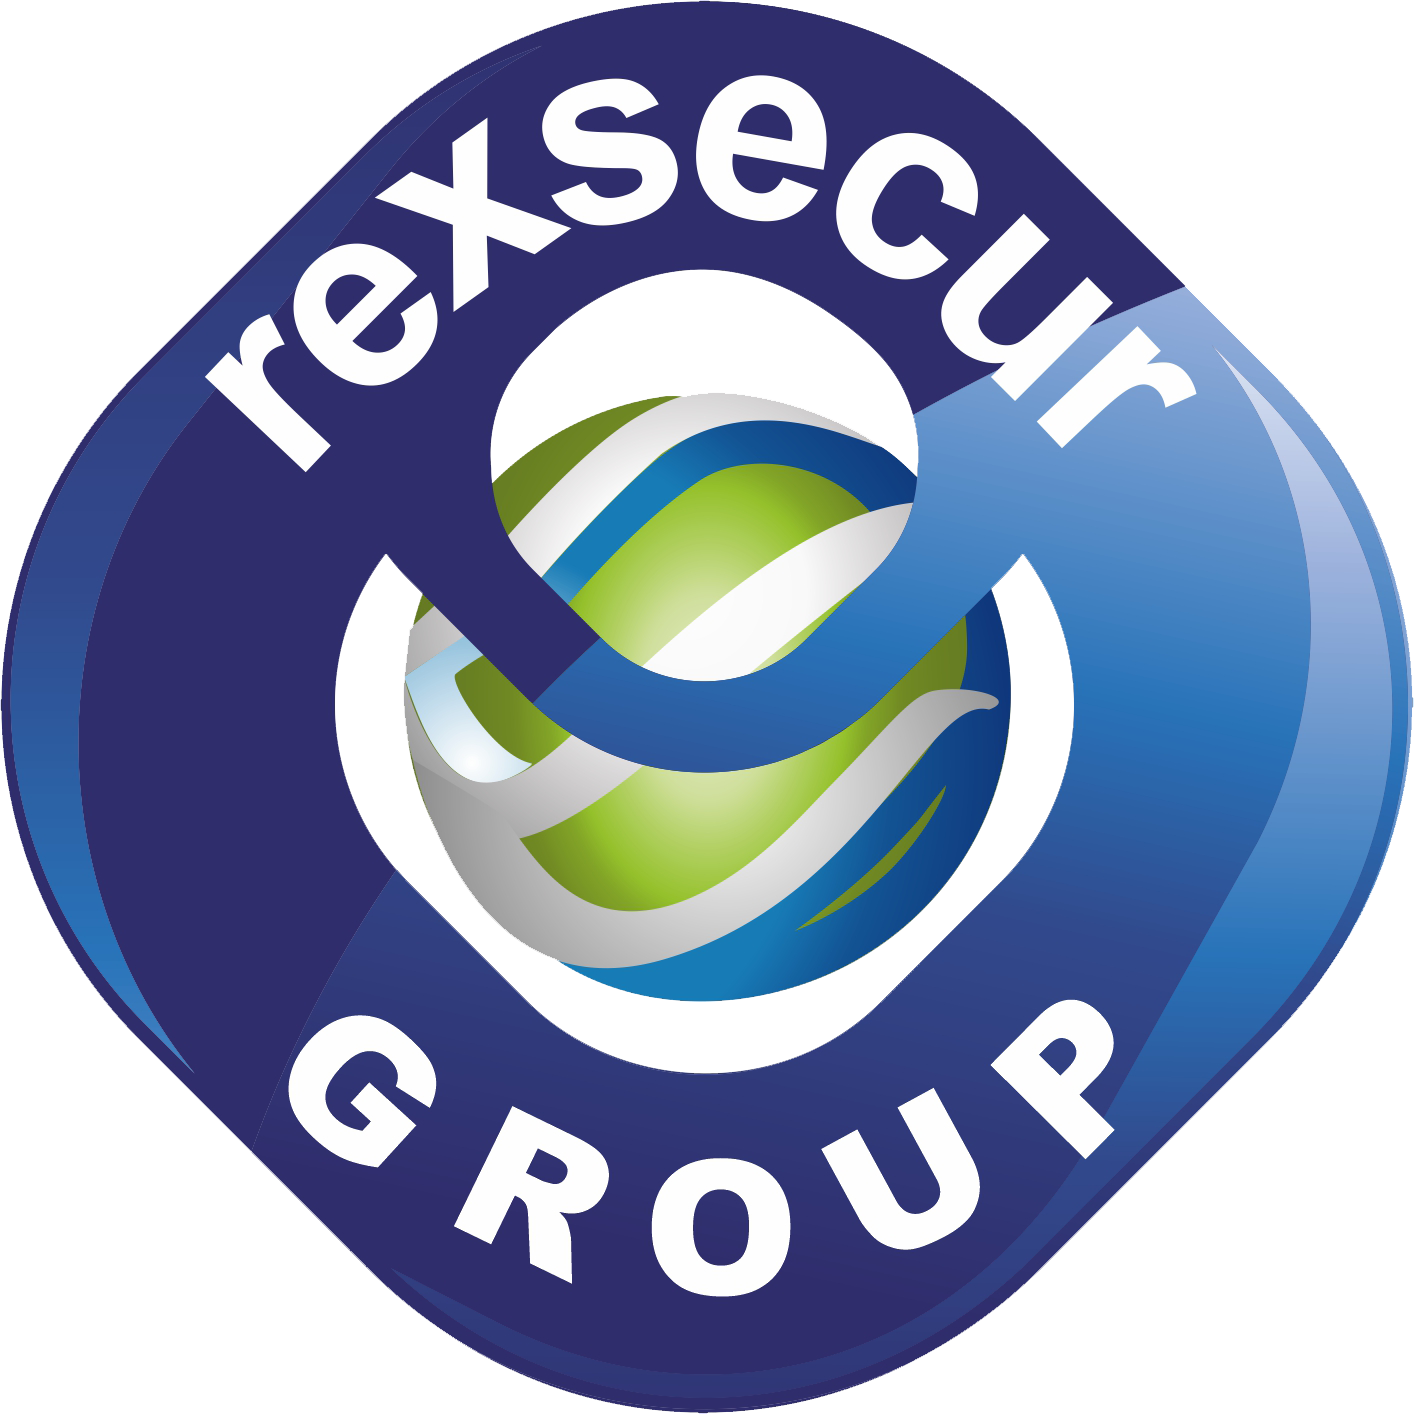 Rexsecur Group